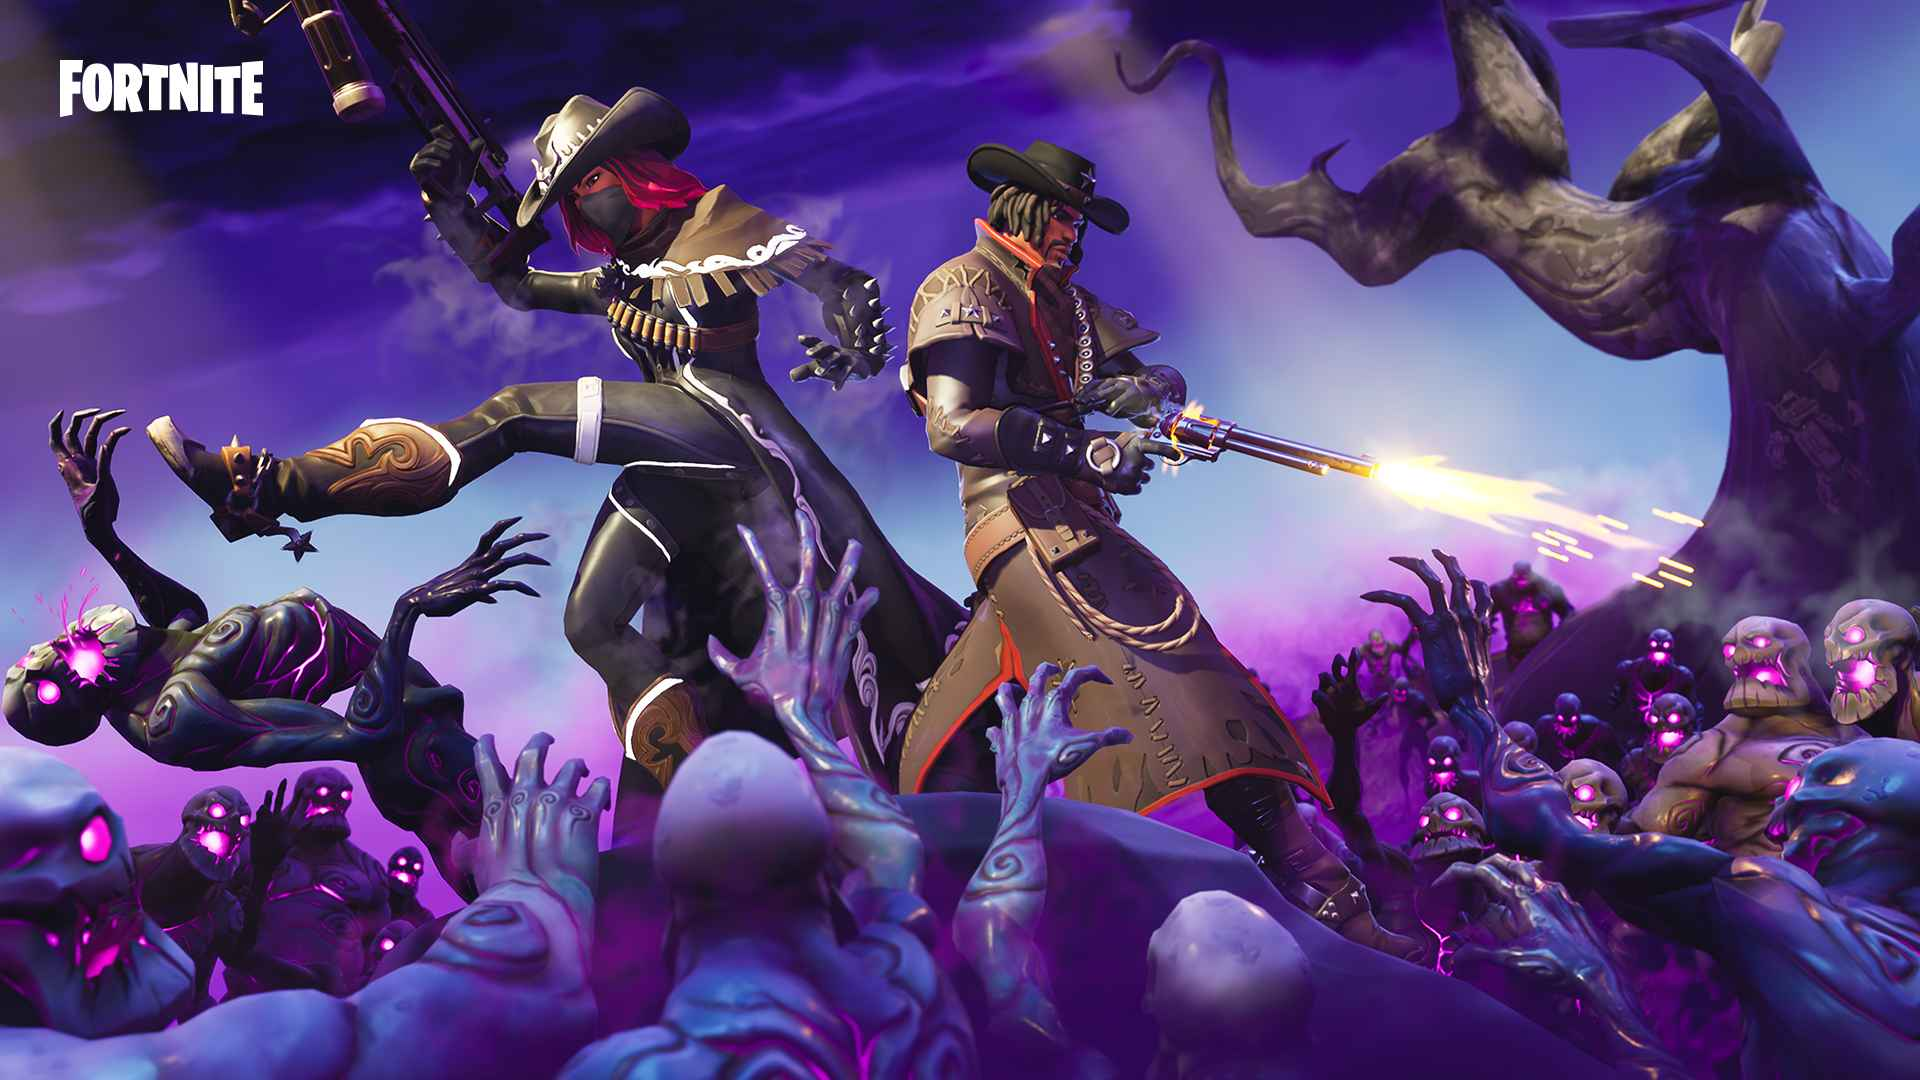 Fortnite Tracker Unblocked How To Bypass The Block   PlayStation 1920x1080